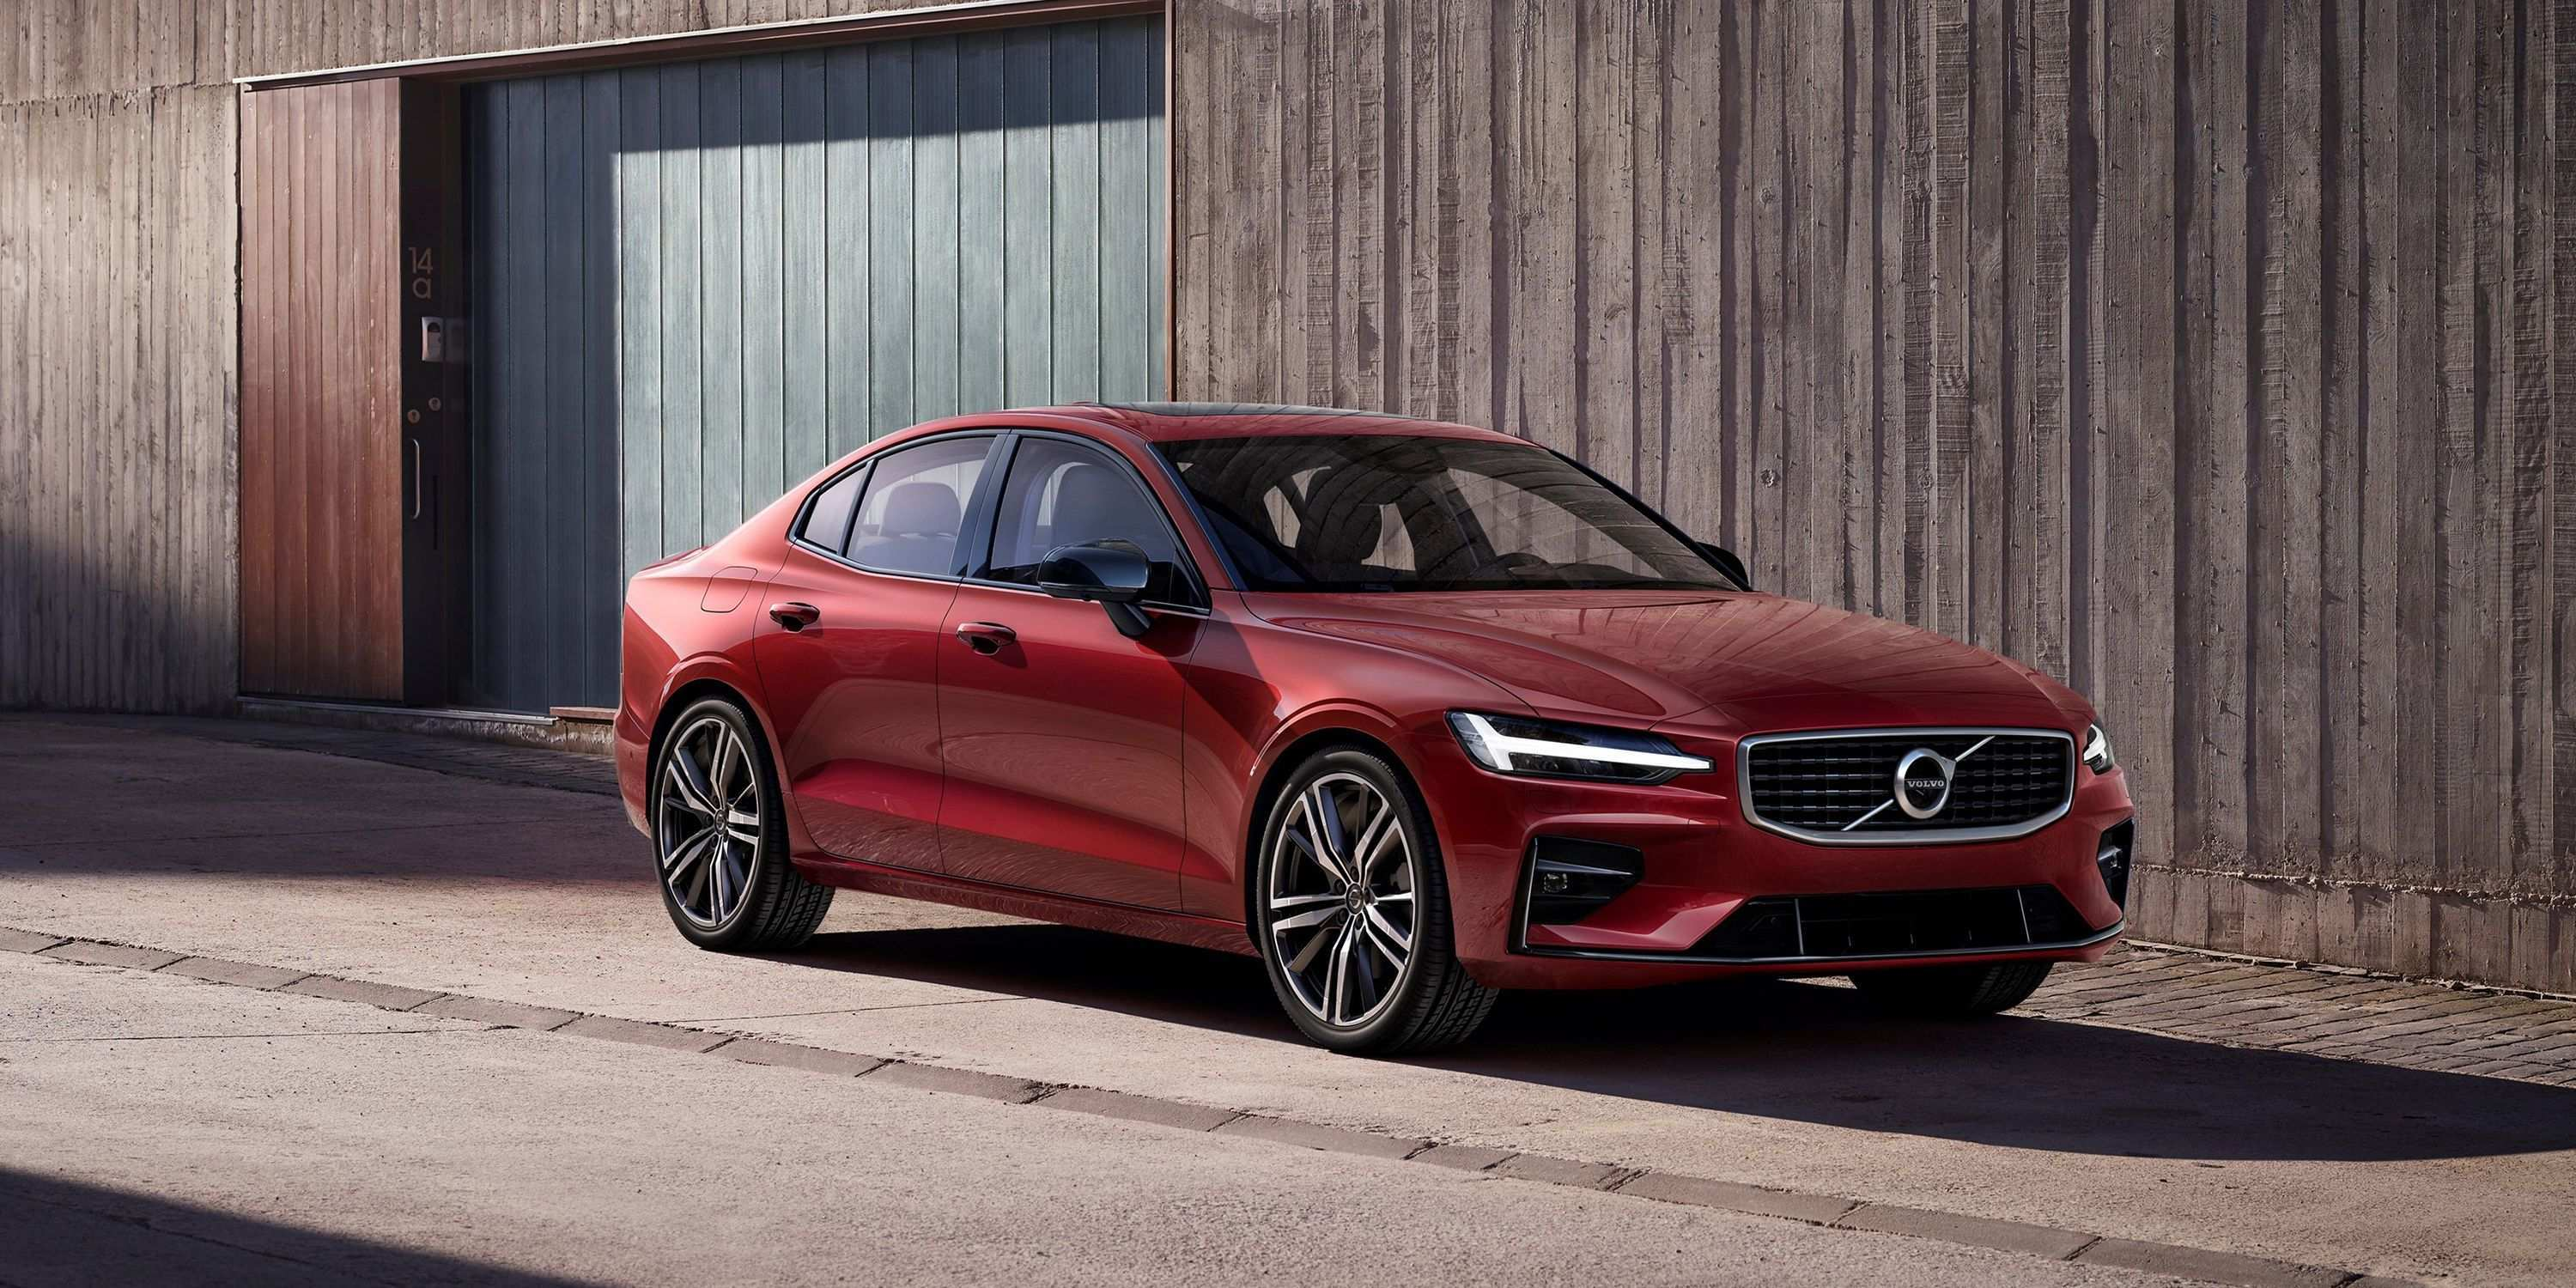 74 Best Review 2020 Volvo S60 Polestar Redesign and Concept by 2020 Volvo S60 Polestar